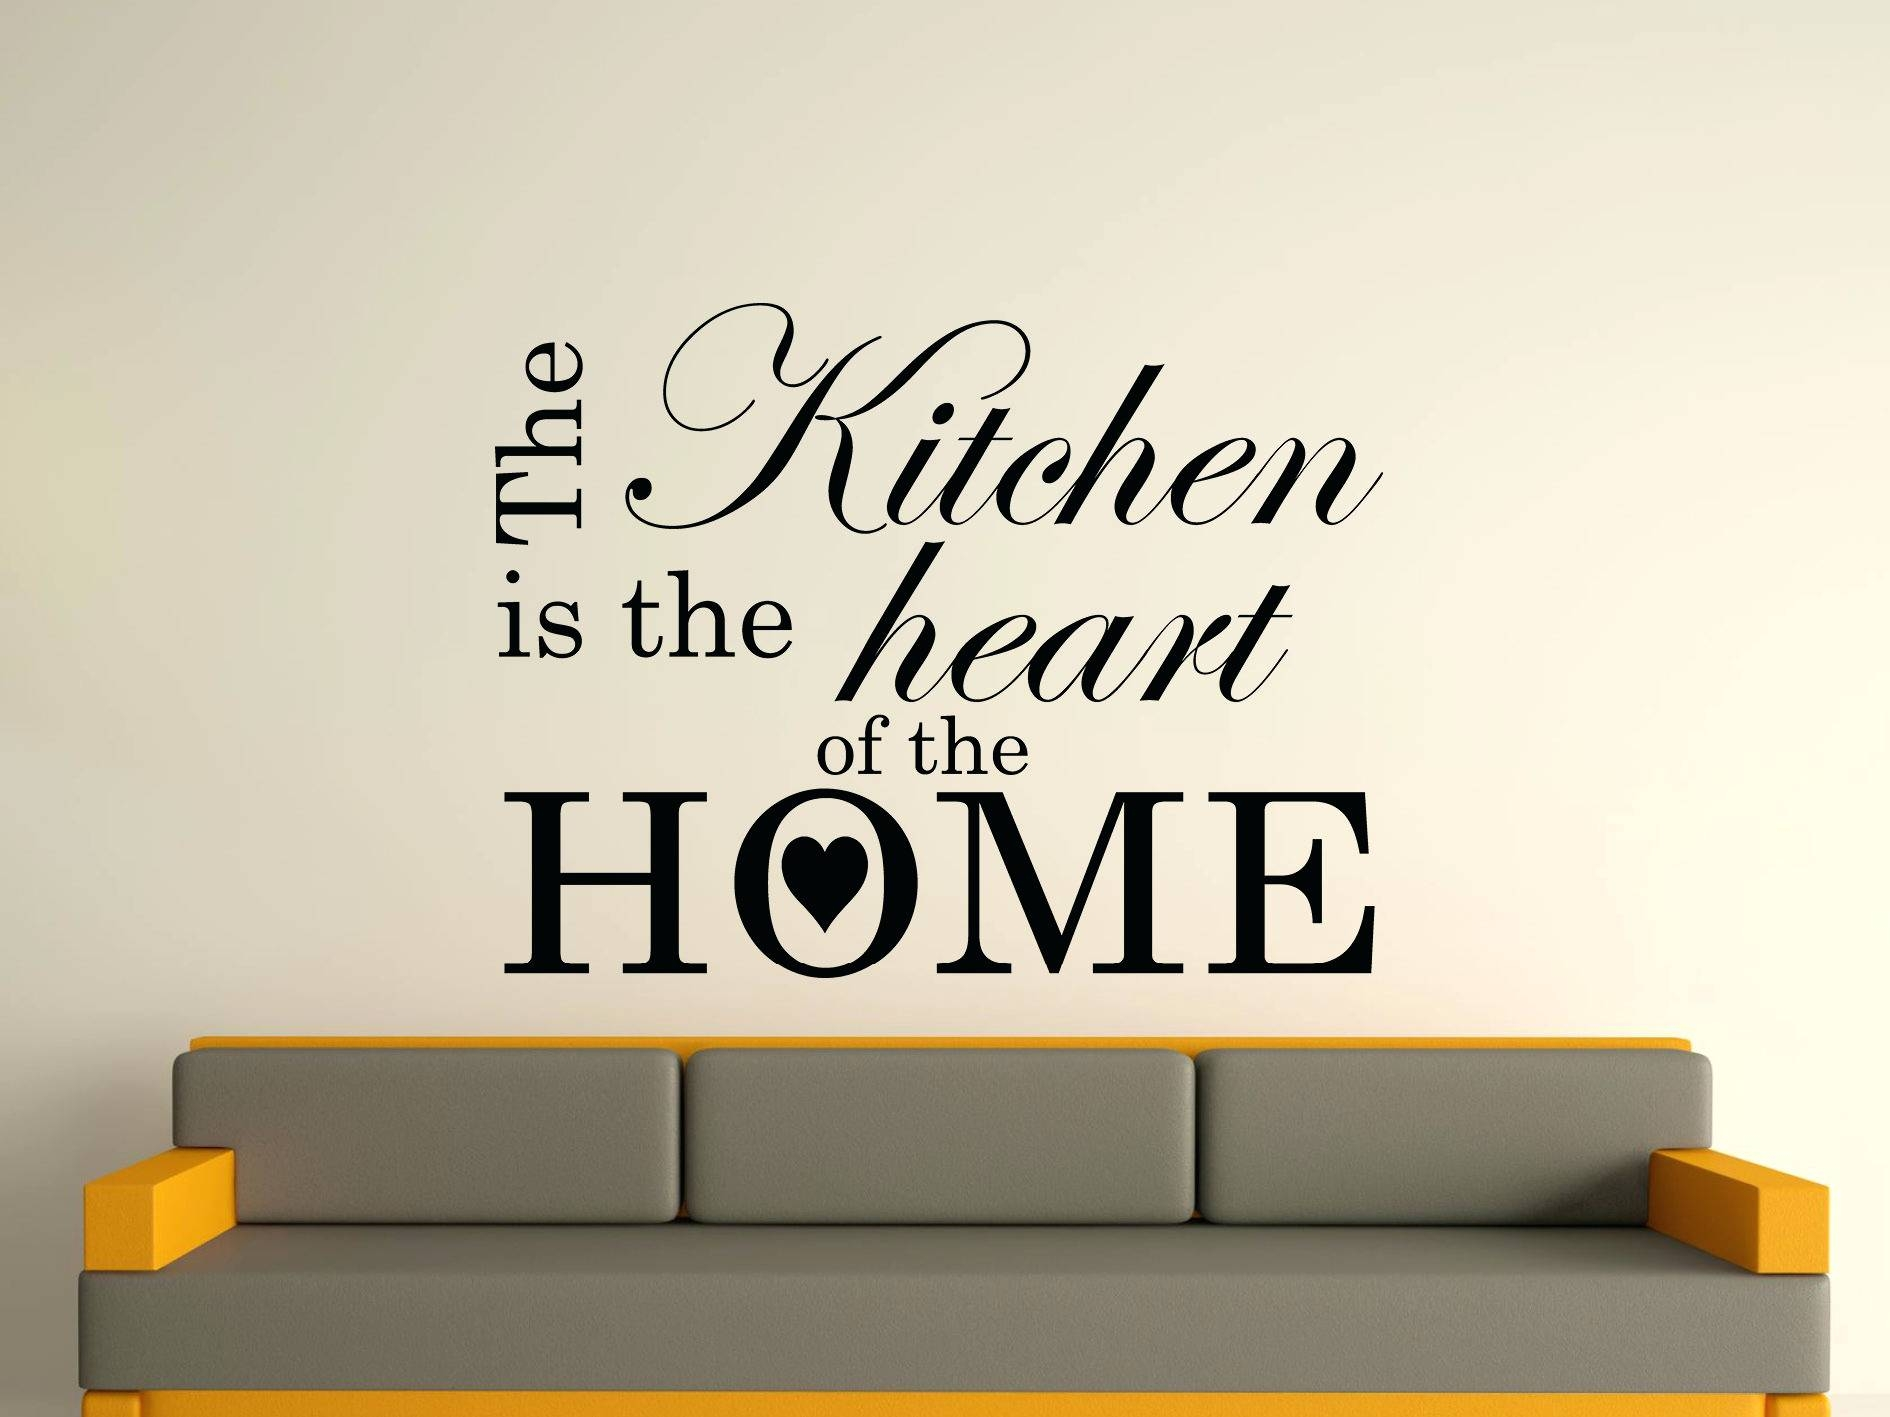 Wall Arts ~ Home Wall Art Designs Home Sweet Home Wall Art Within 2018 Home Sweet Home Metal Wall Art (View 19 of 20)